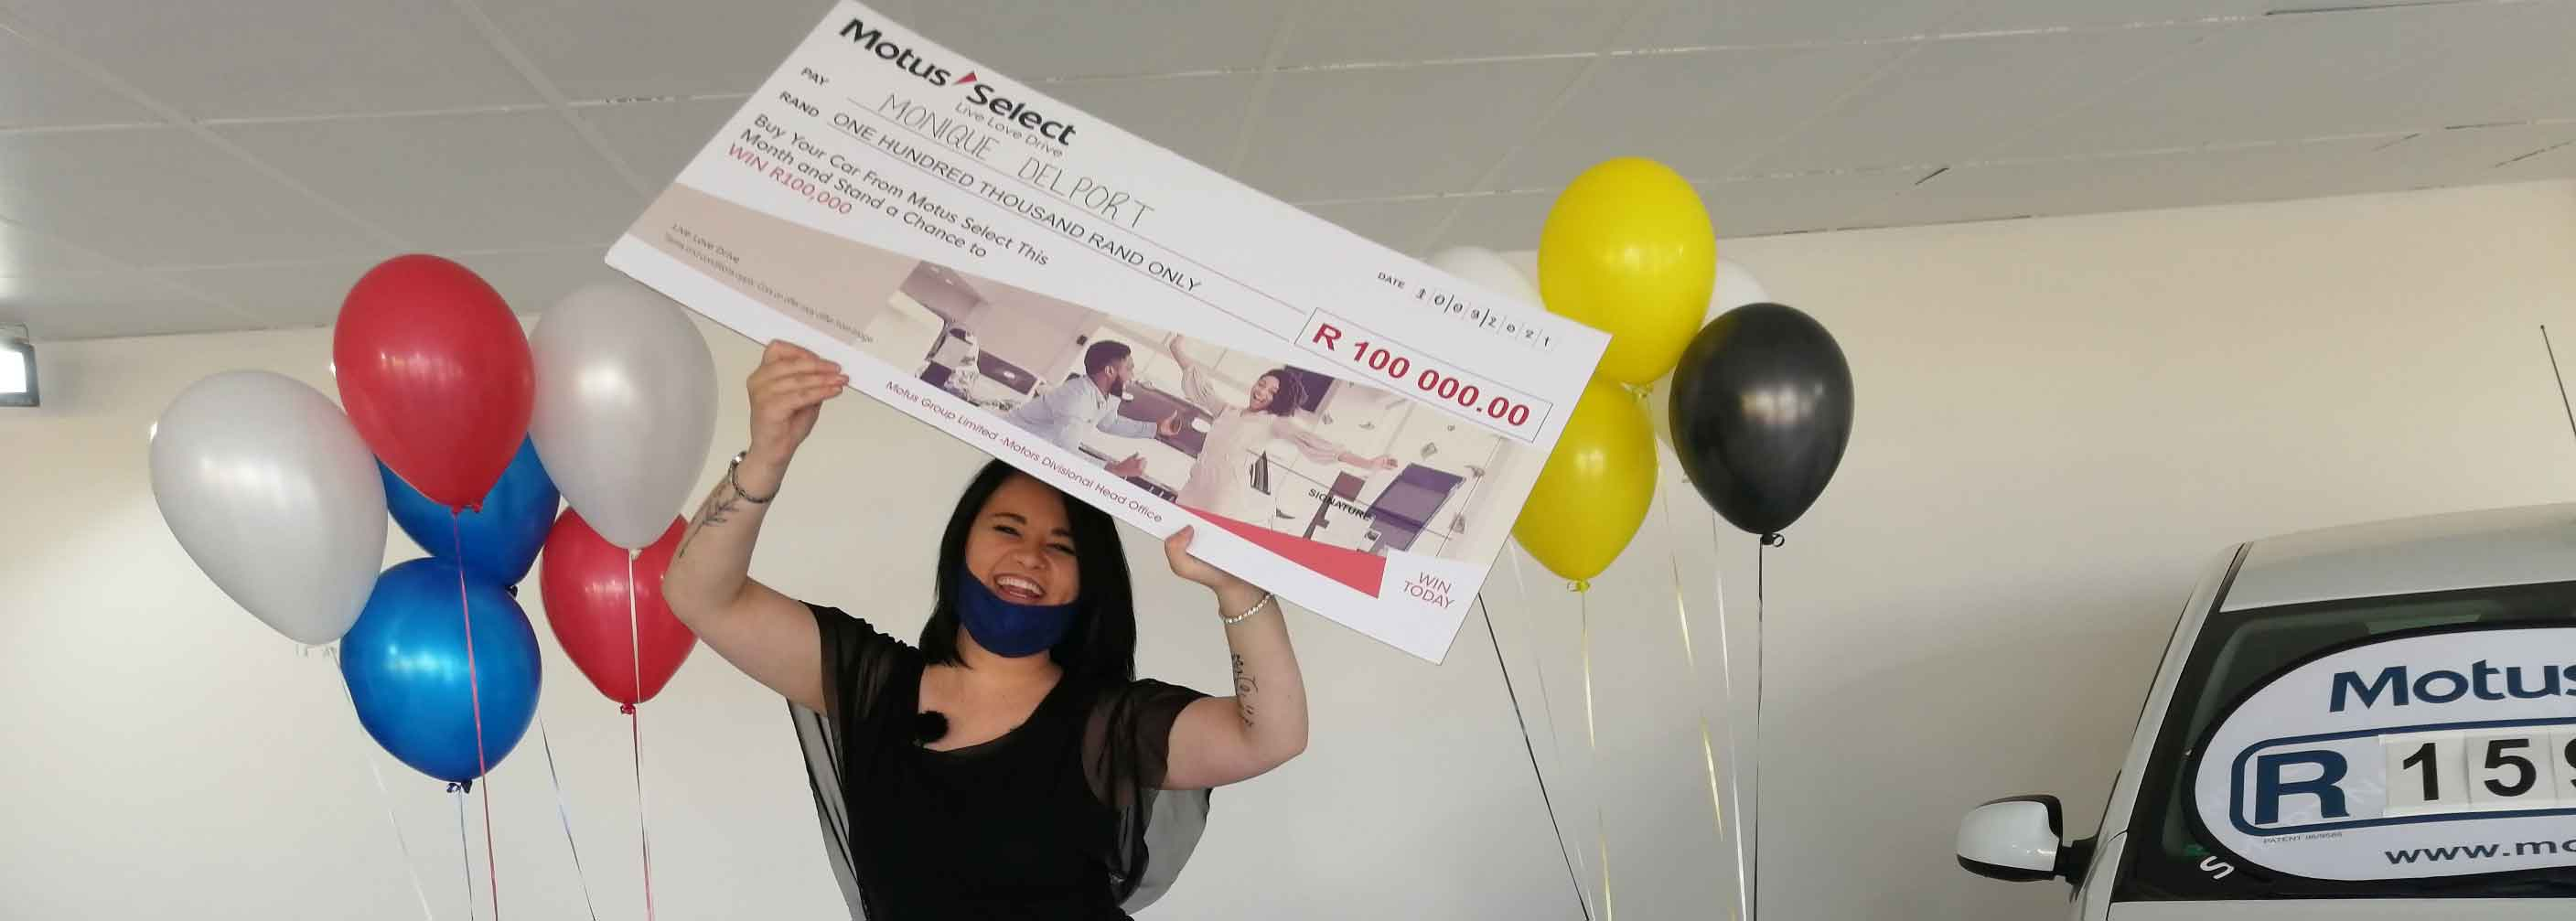 Motus Select awards third shopper with R100 000 prize